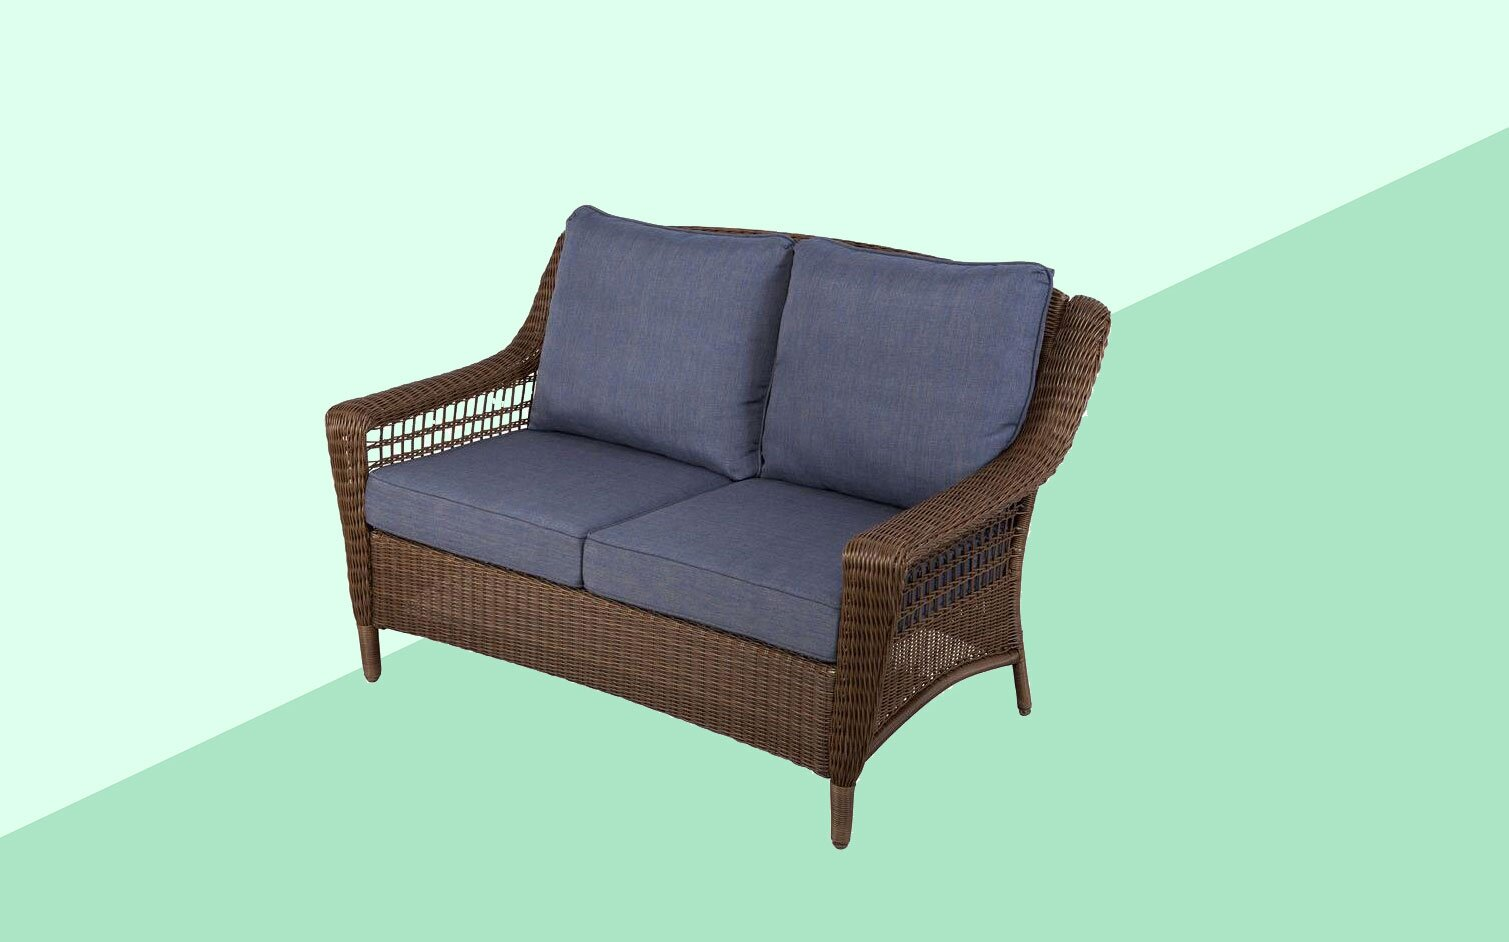 the best places to buy outdoor furniture online | real simple